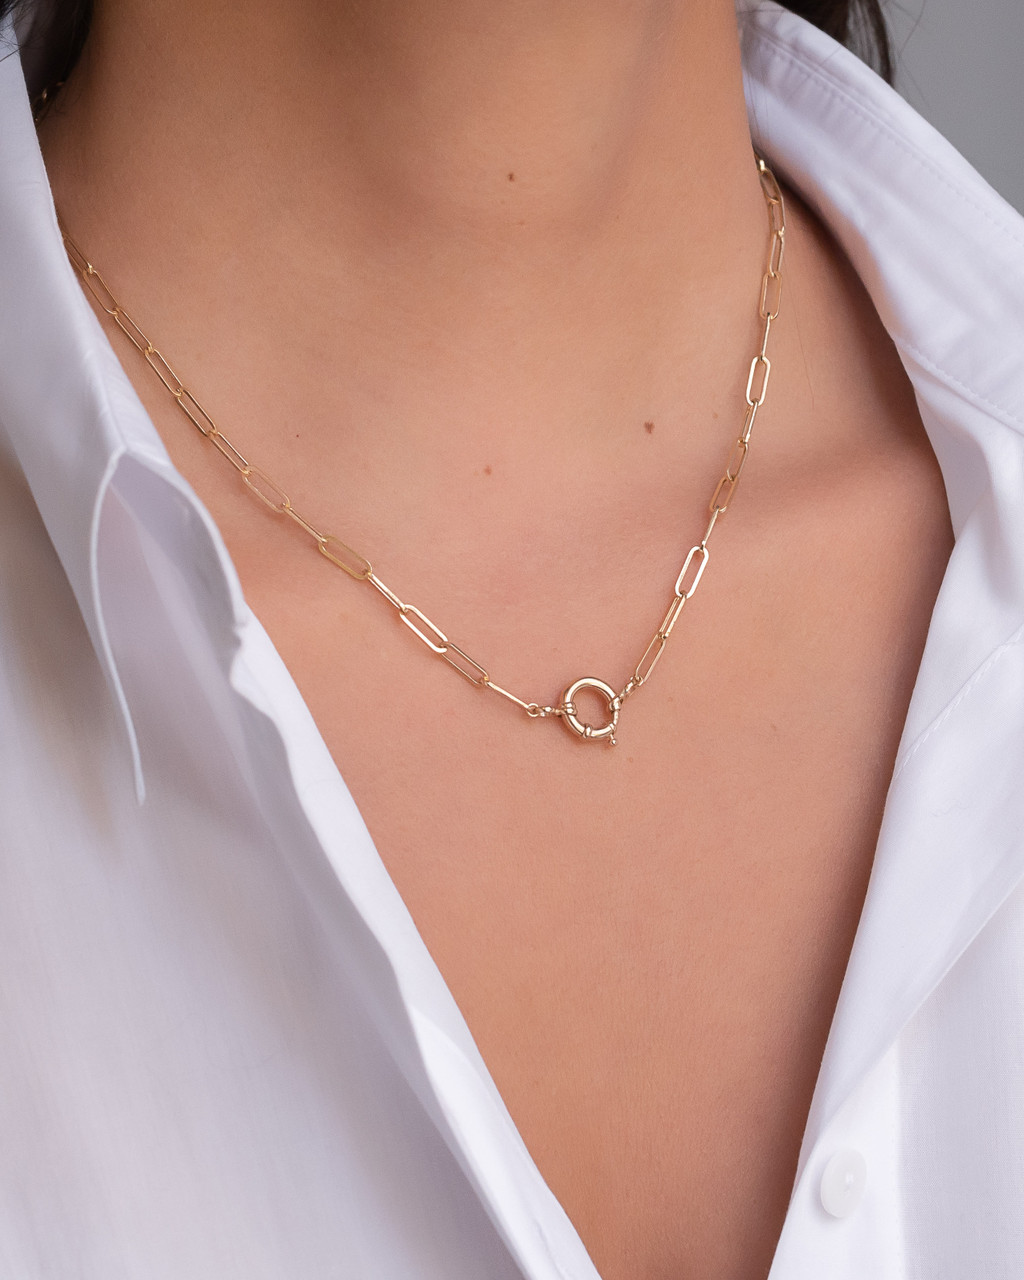 14k Gold Paper Clip Chain with Large Clasp Necklace